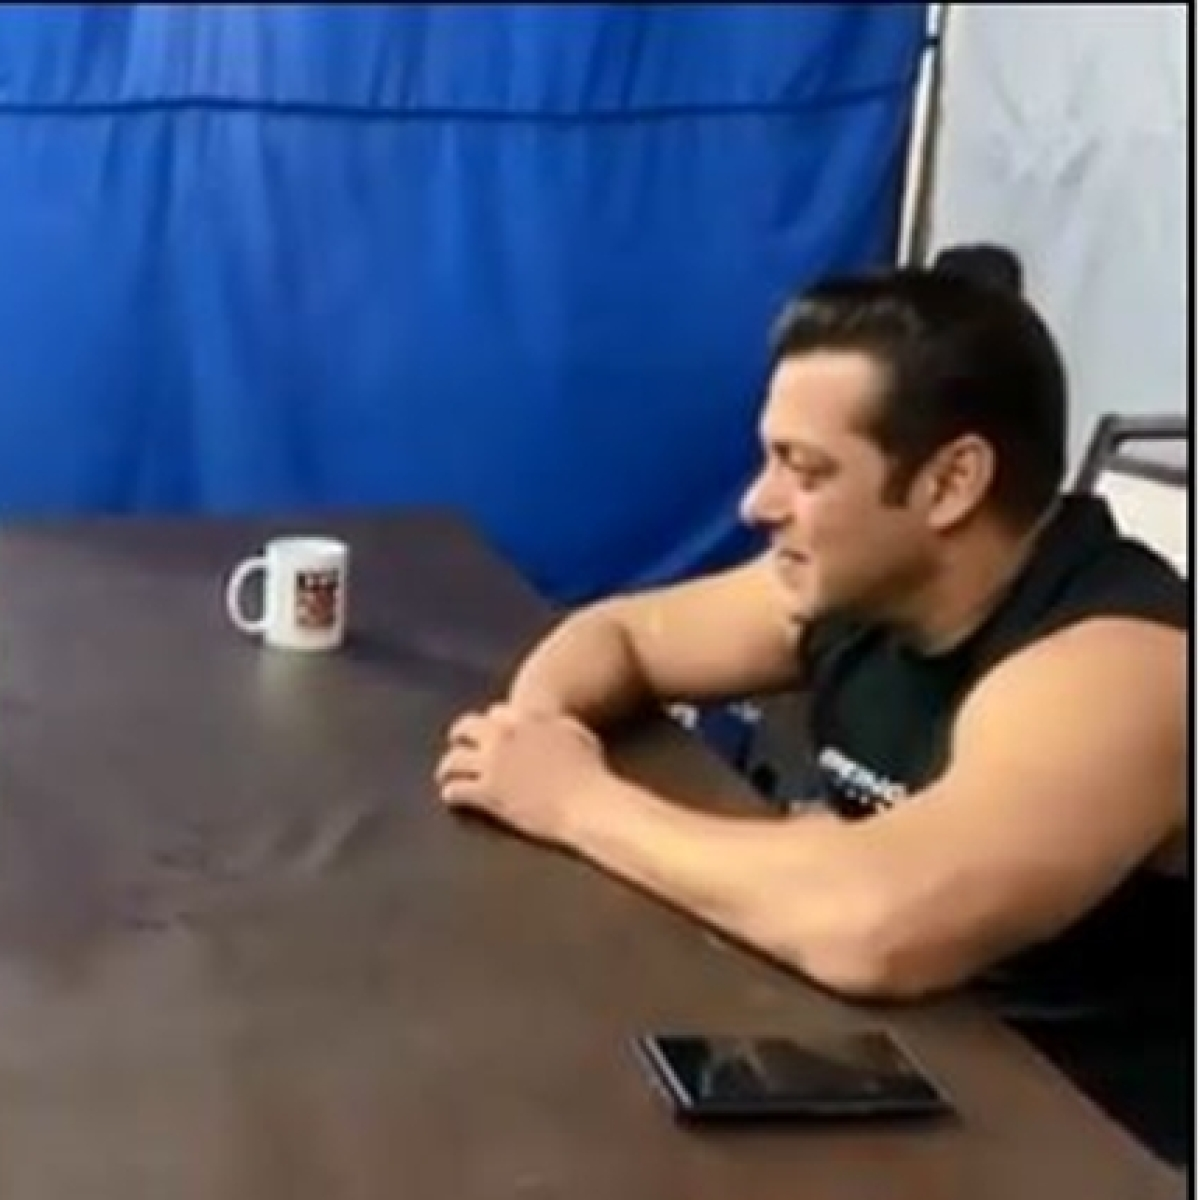 'Little' fan serenades Salman Khan with Stevie Wonder song